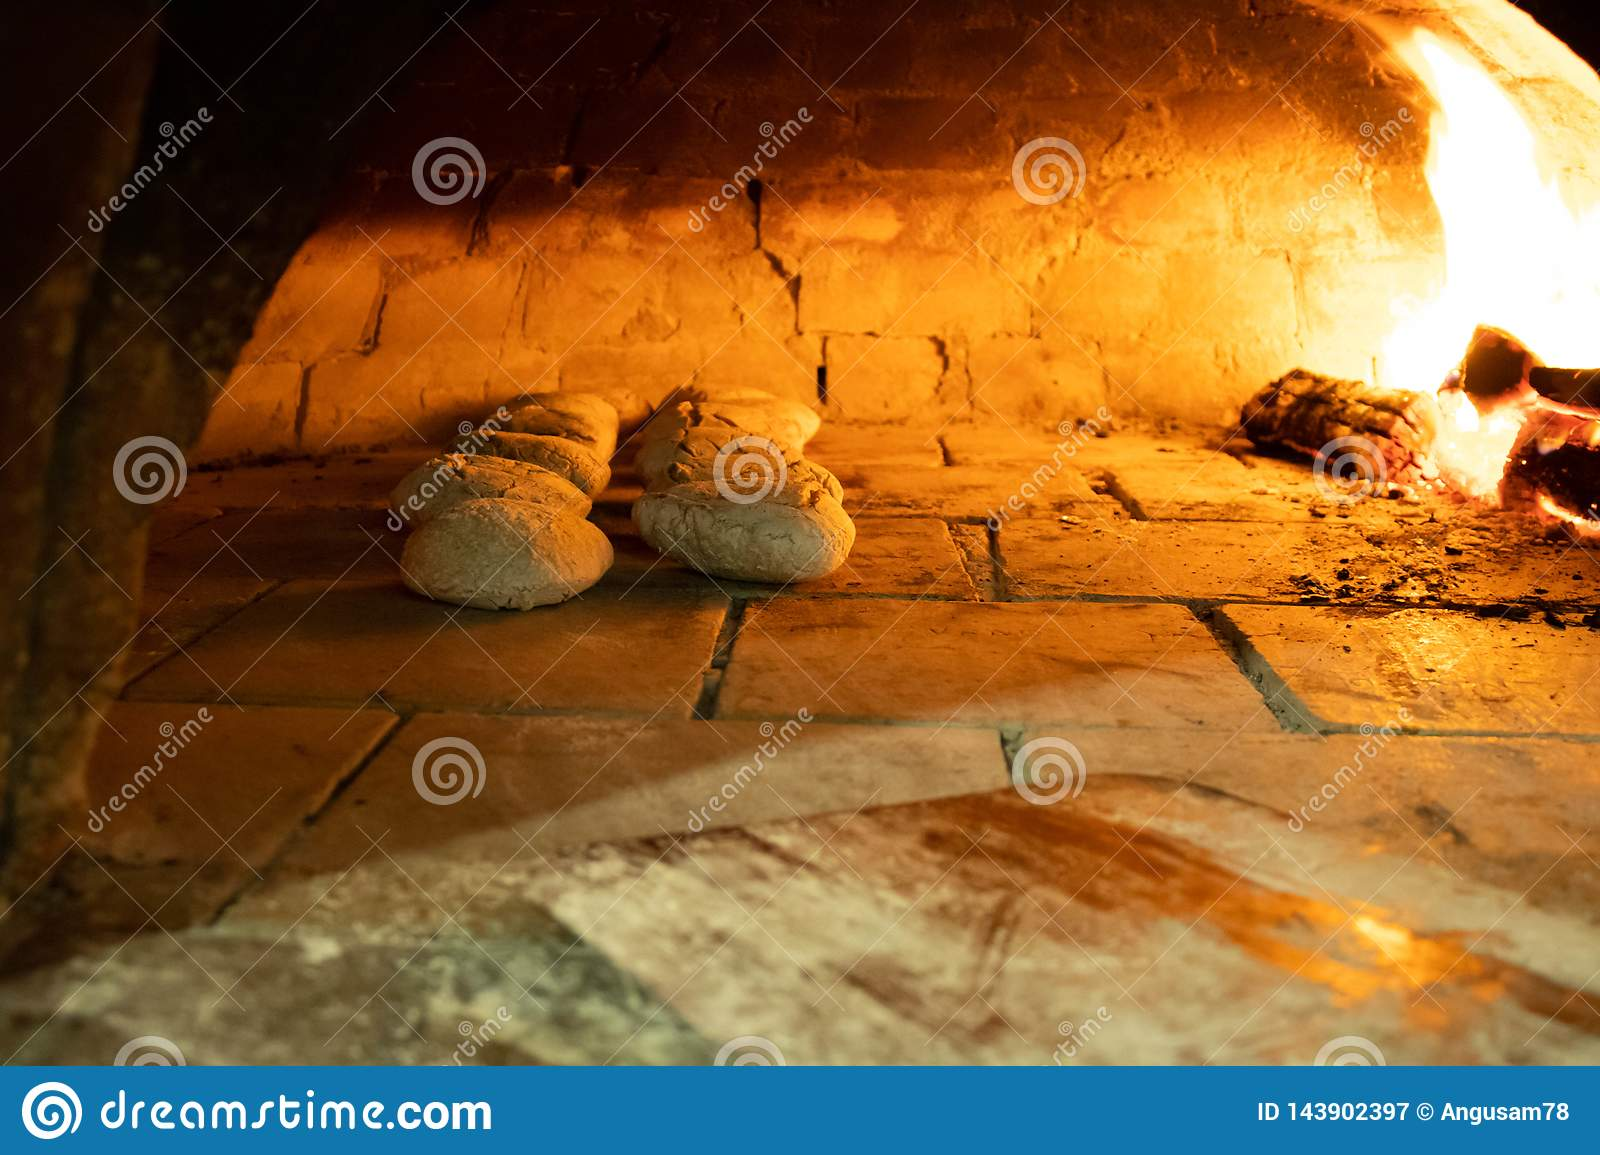 Rustic bread baking in pizza oven